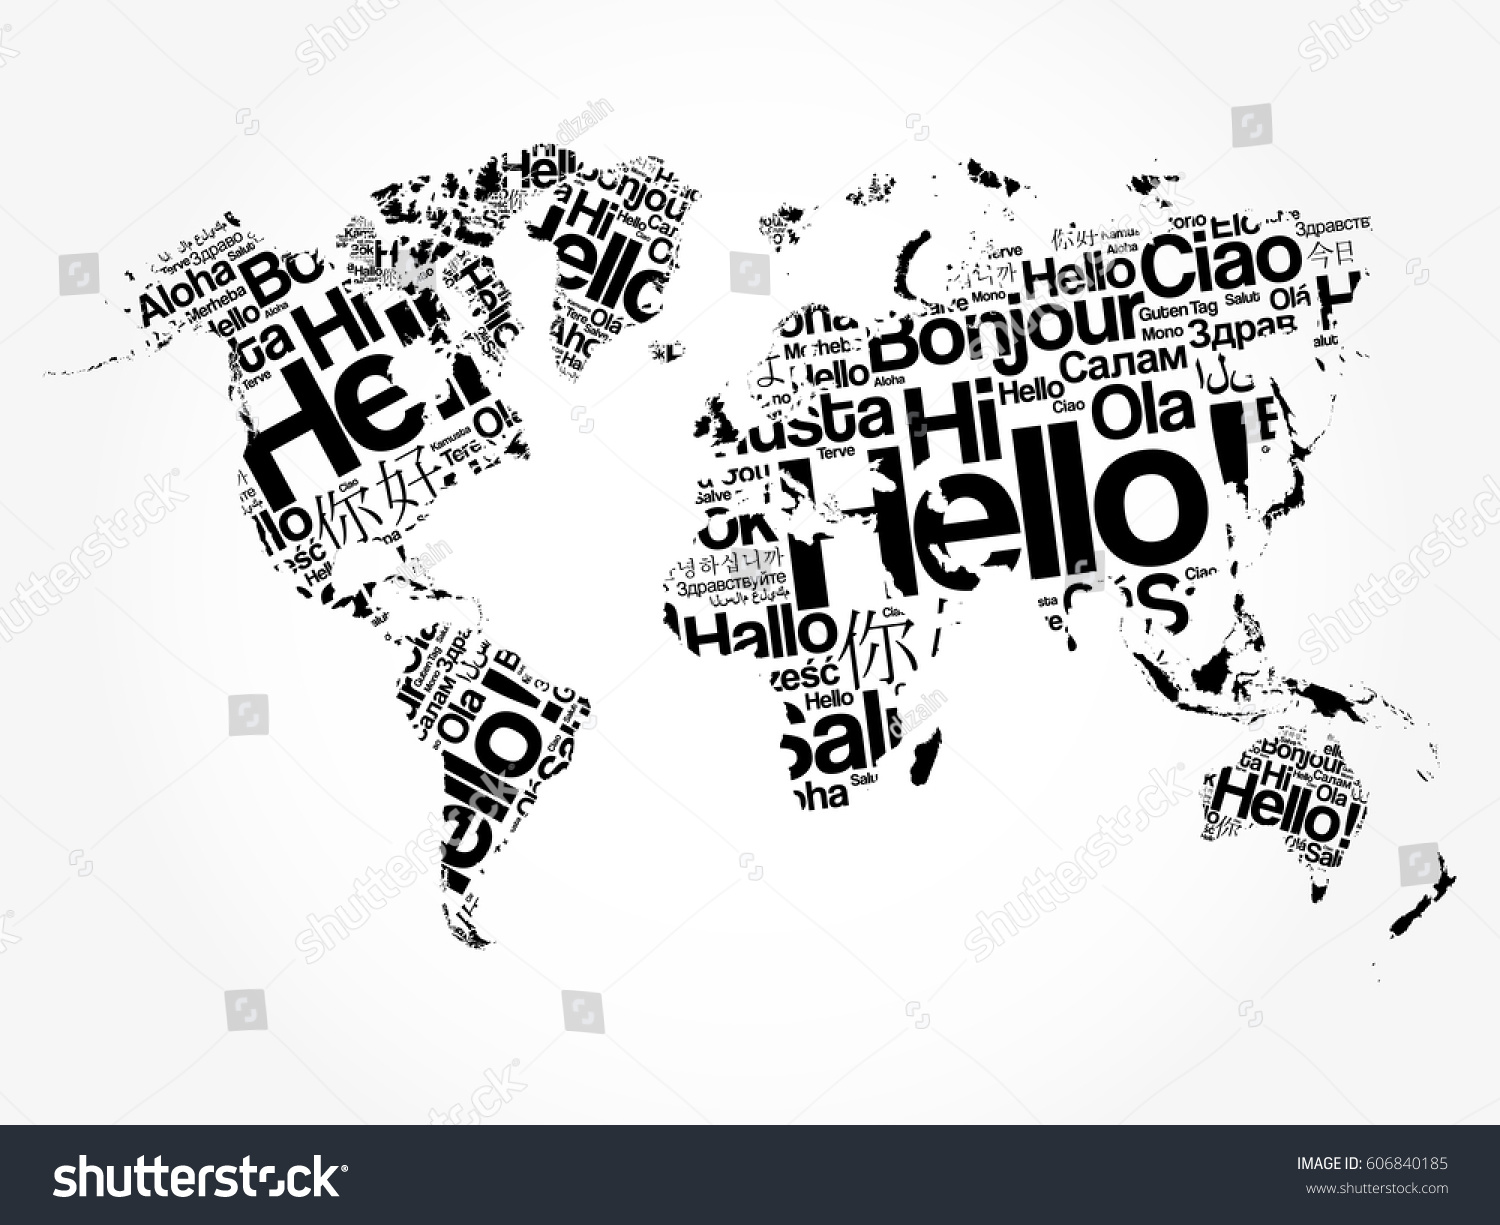 Hello different languages word cloud world vectores en stock hello in different languages word cloud world map business concept background gumiabroncs Choice Image